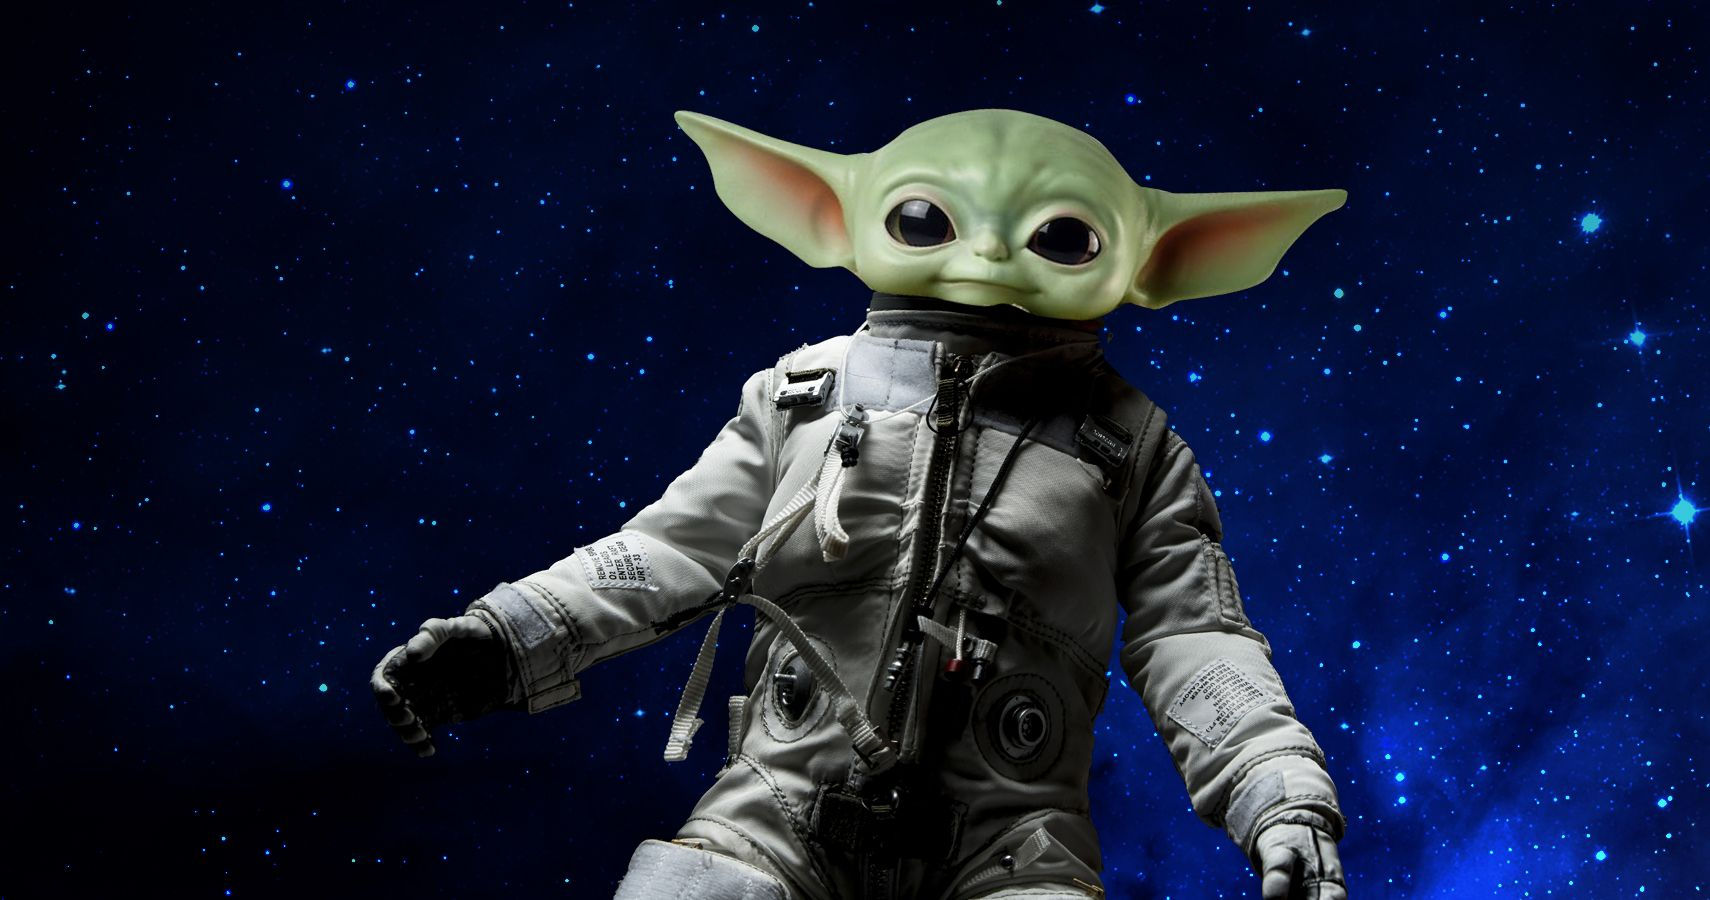 Baby Yoda Toy Is On The International Space Station | Moms.com